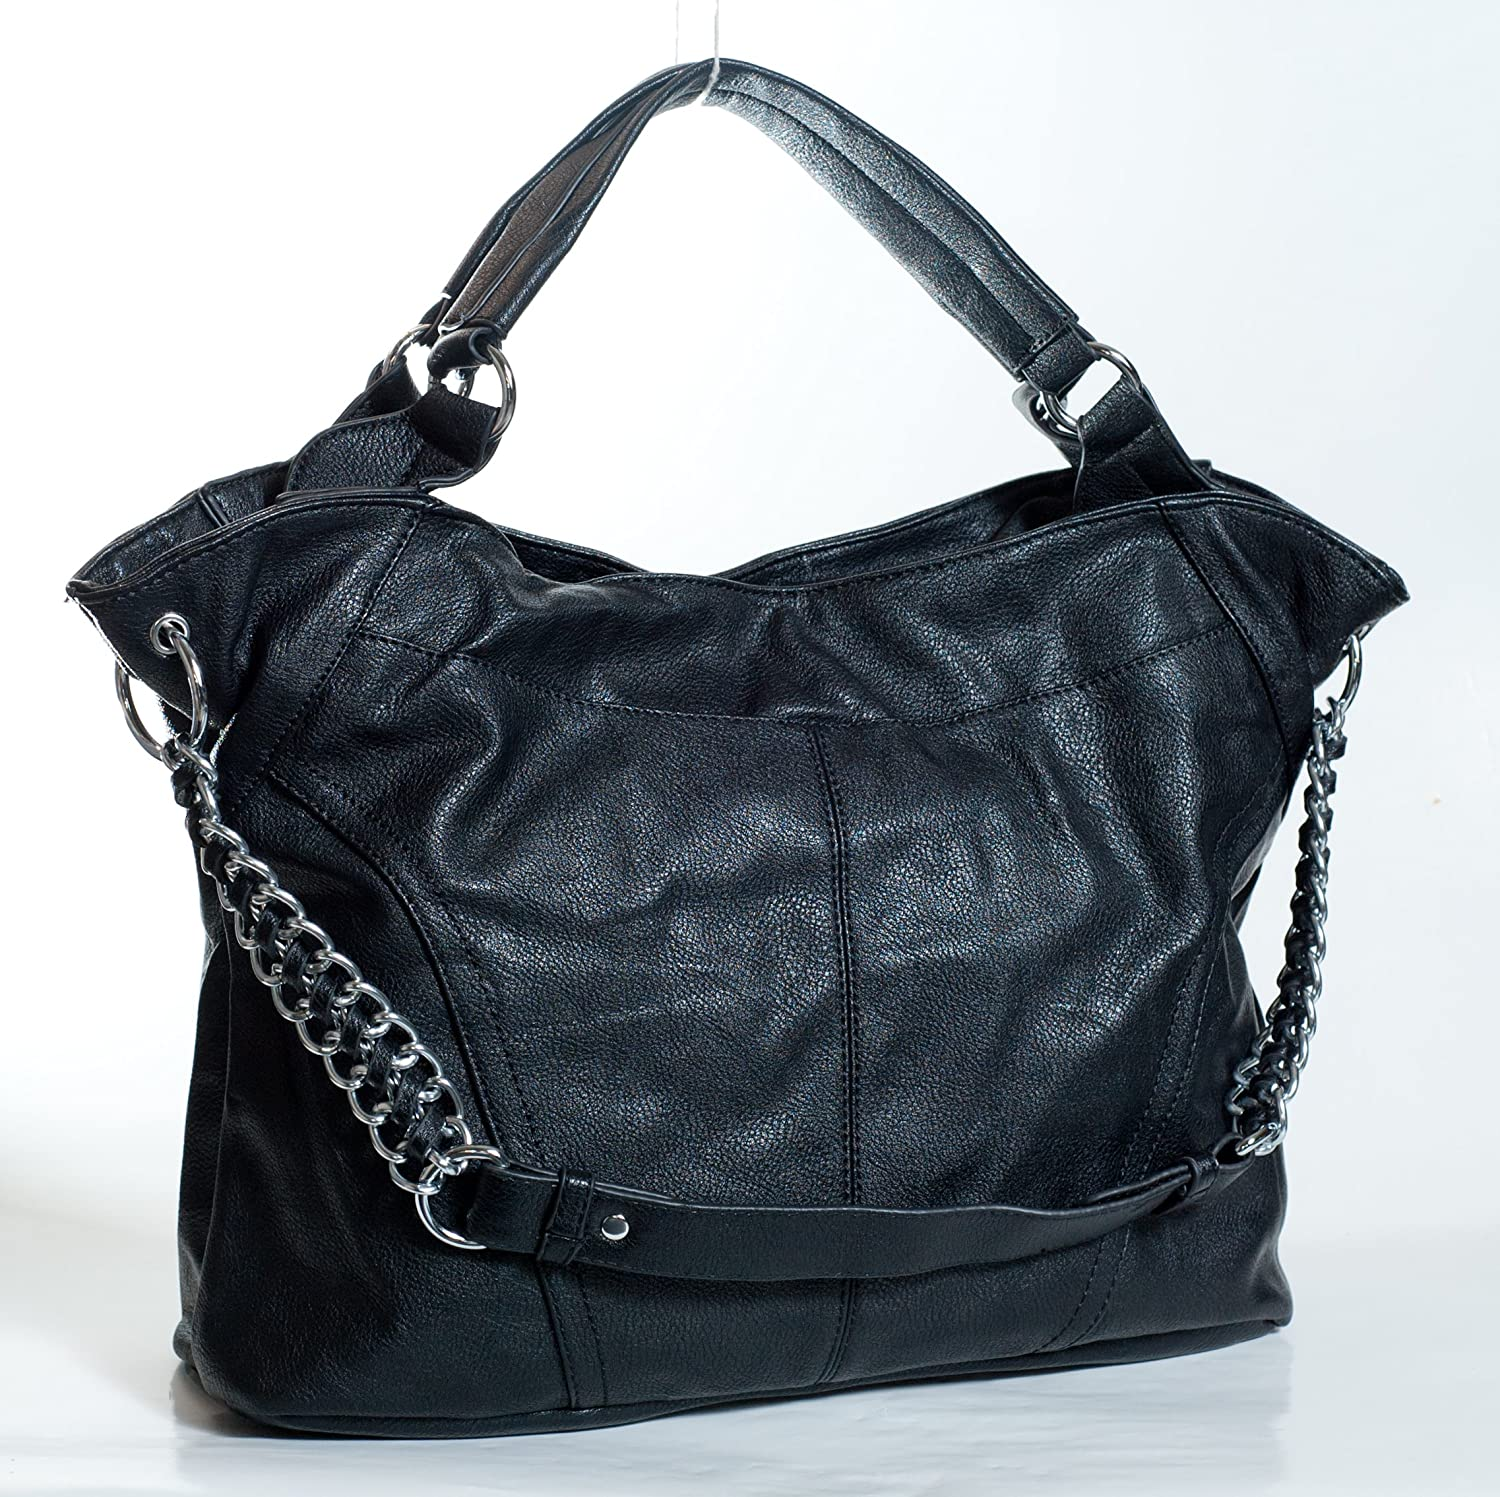 Designer Inspired Chain Faux Leather Cute Large Tote Handbag Satchel in Solid Black